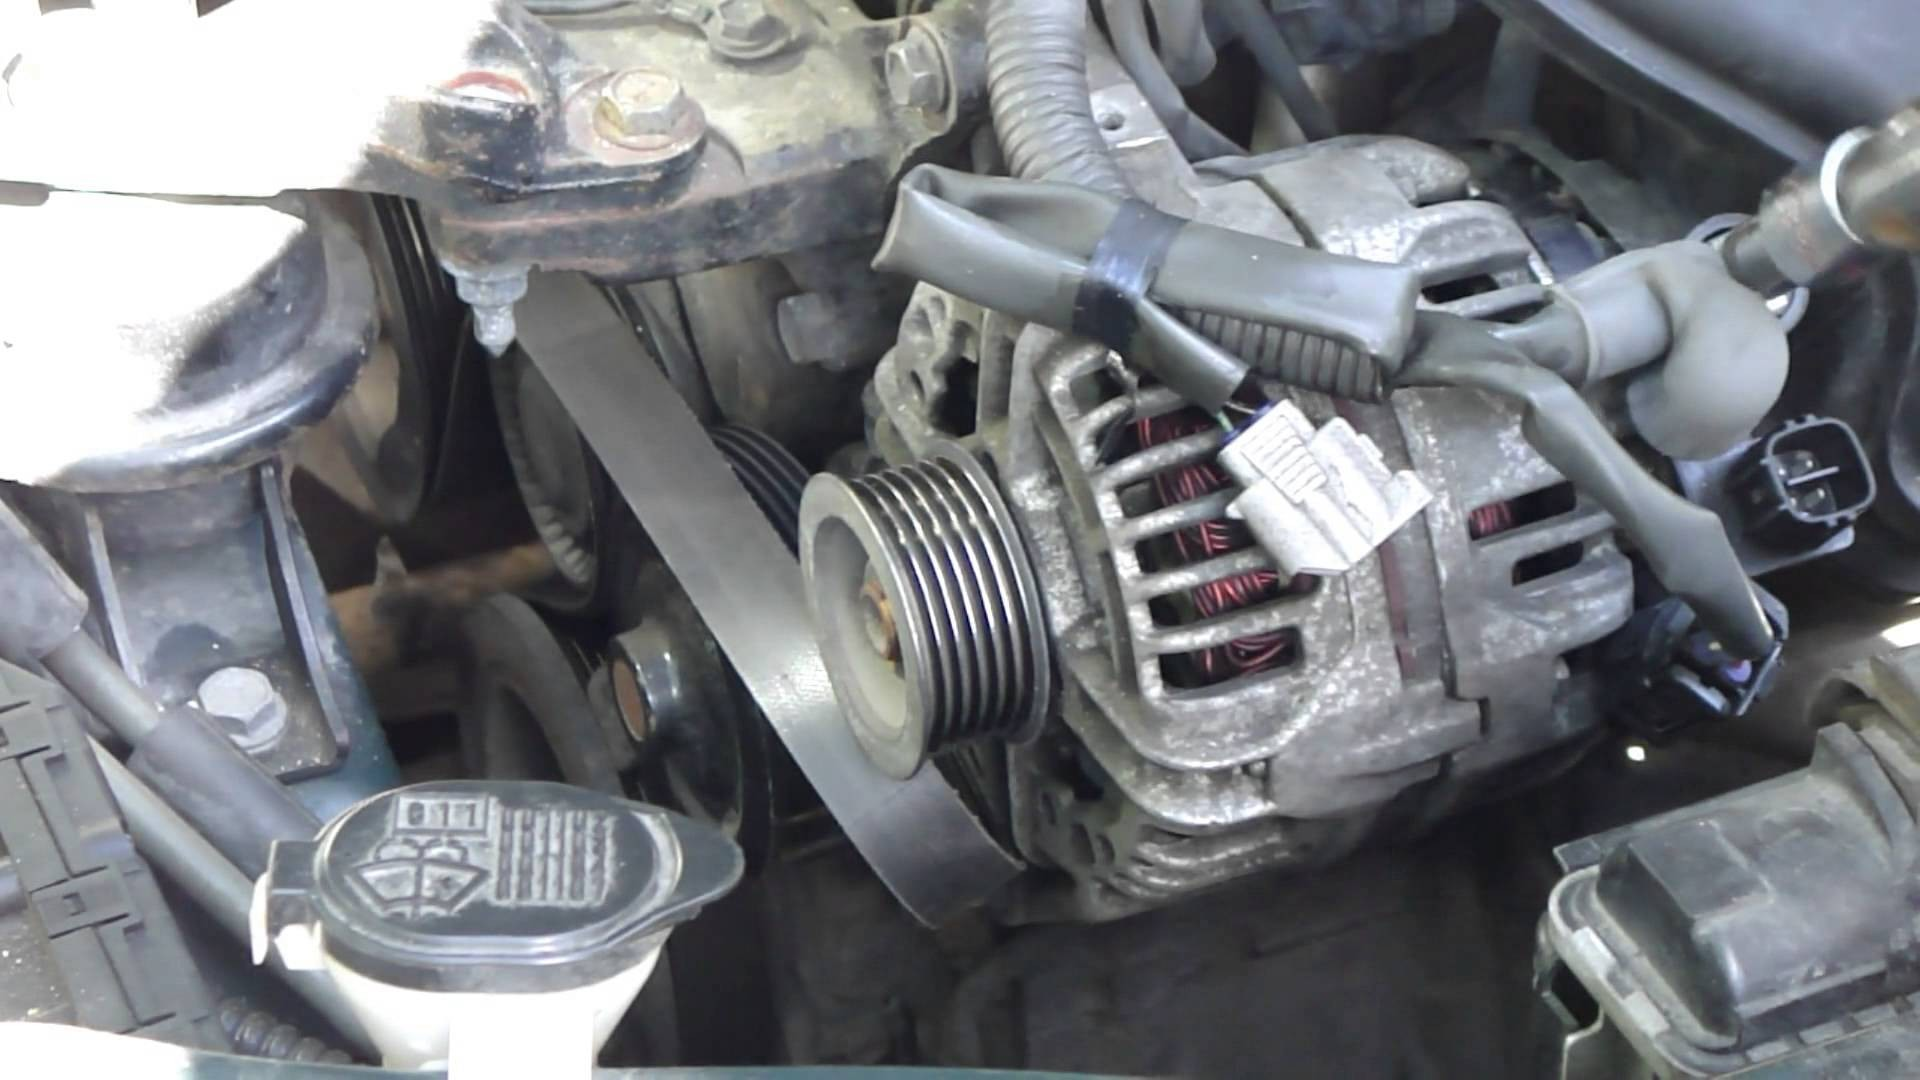 2003 toyota Matrix Parts Diagram How to Change Alternator toyota Corolla Vvt I Engine Years 2000 Of 2003 toyota Matrix Parts Diagram